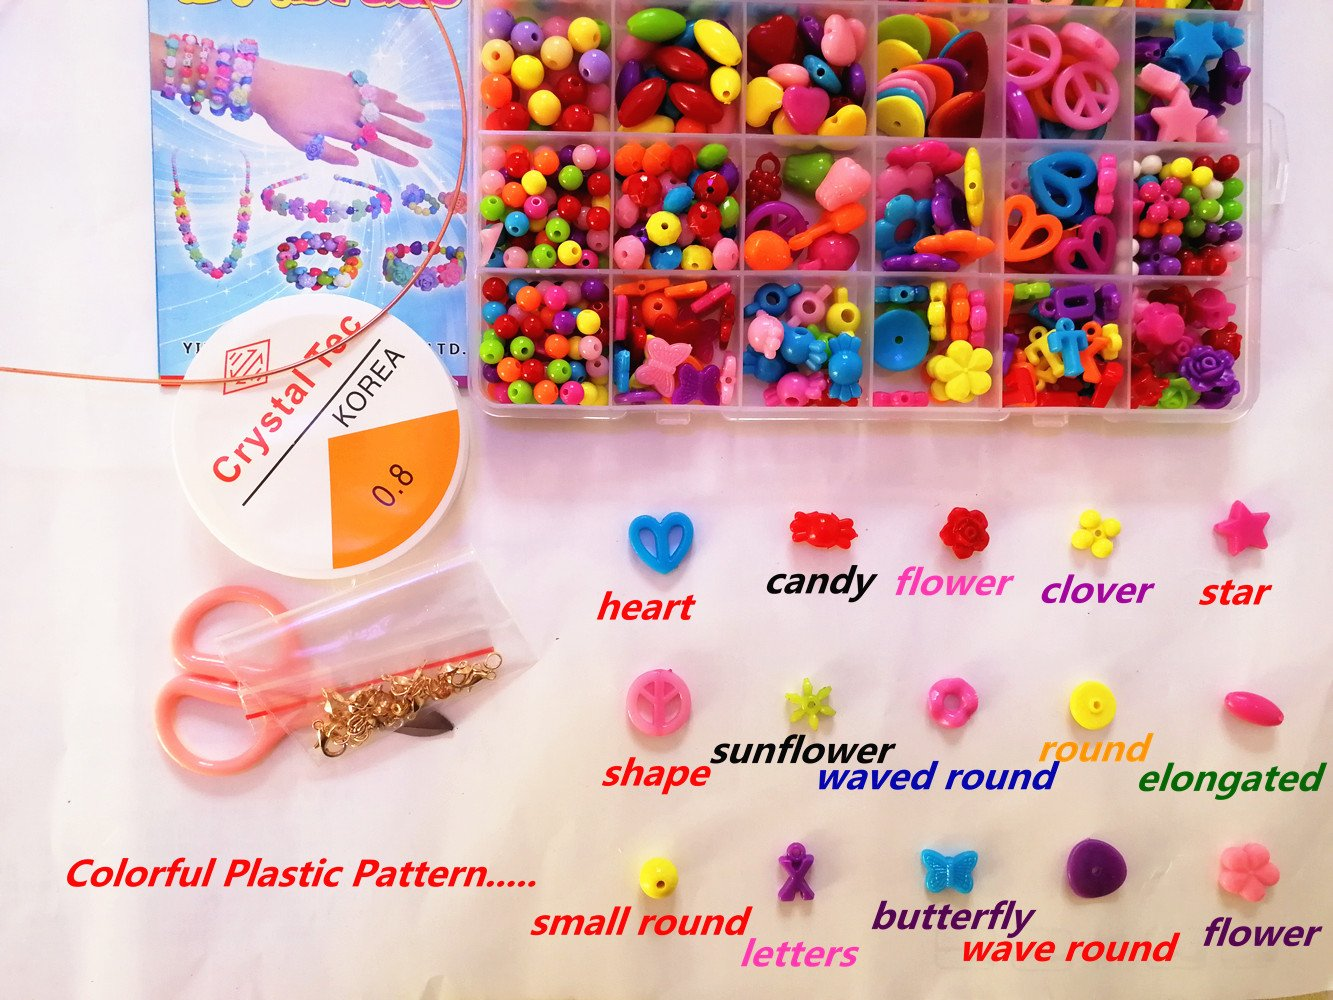 Amazon.com: Vytung Beads Set for Jewelry Making Kids Adults Children ...